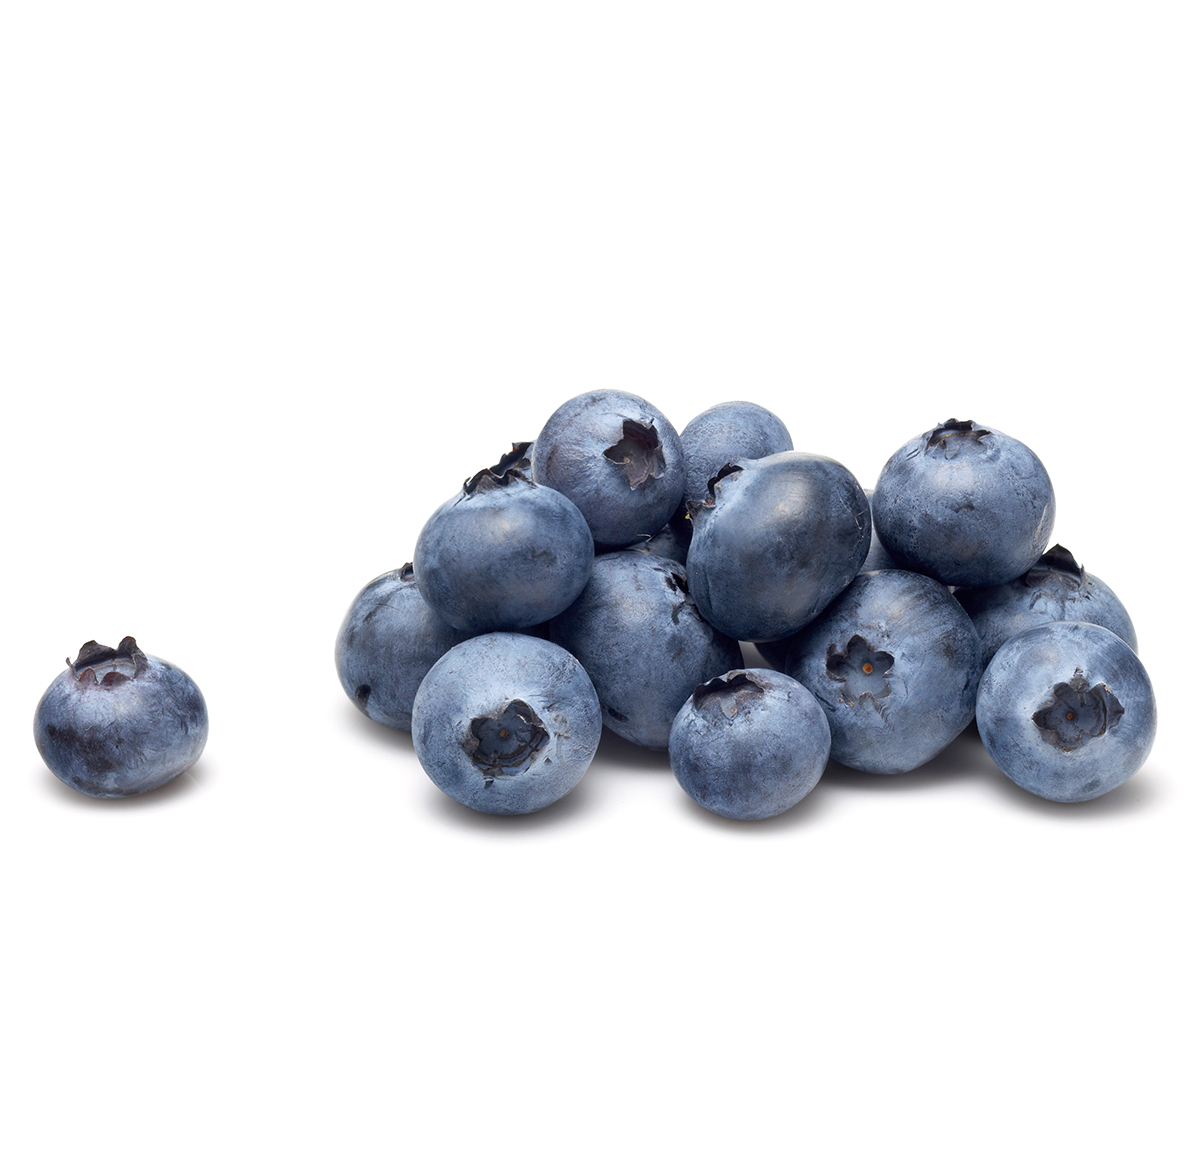 blueberries off the vine are sublime